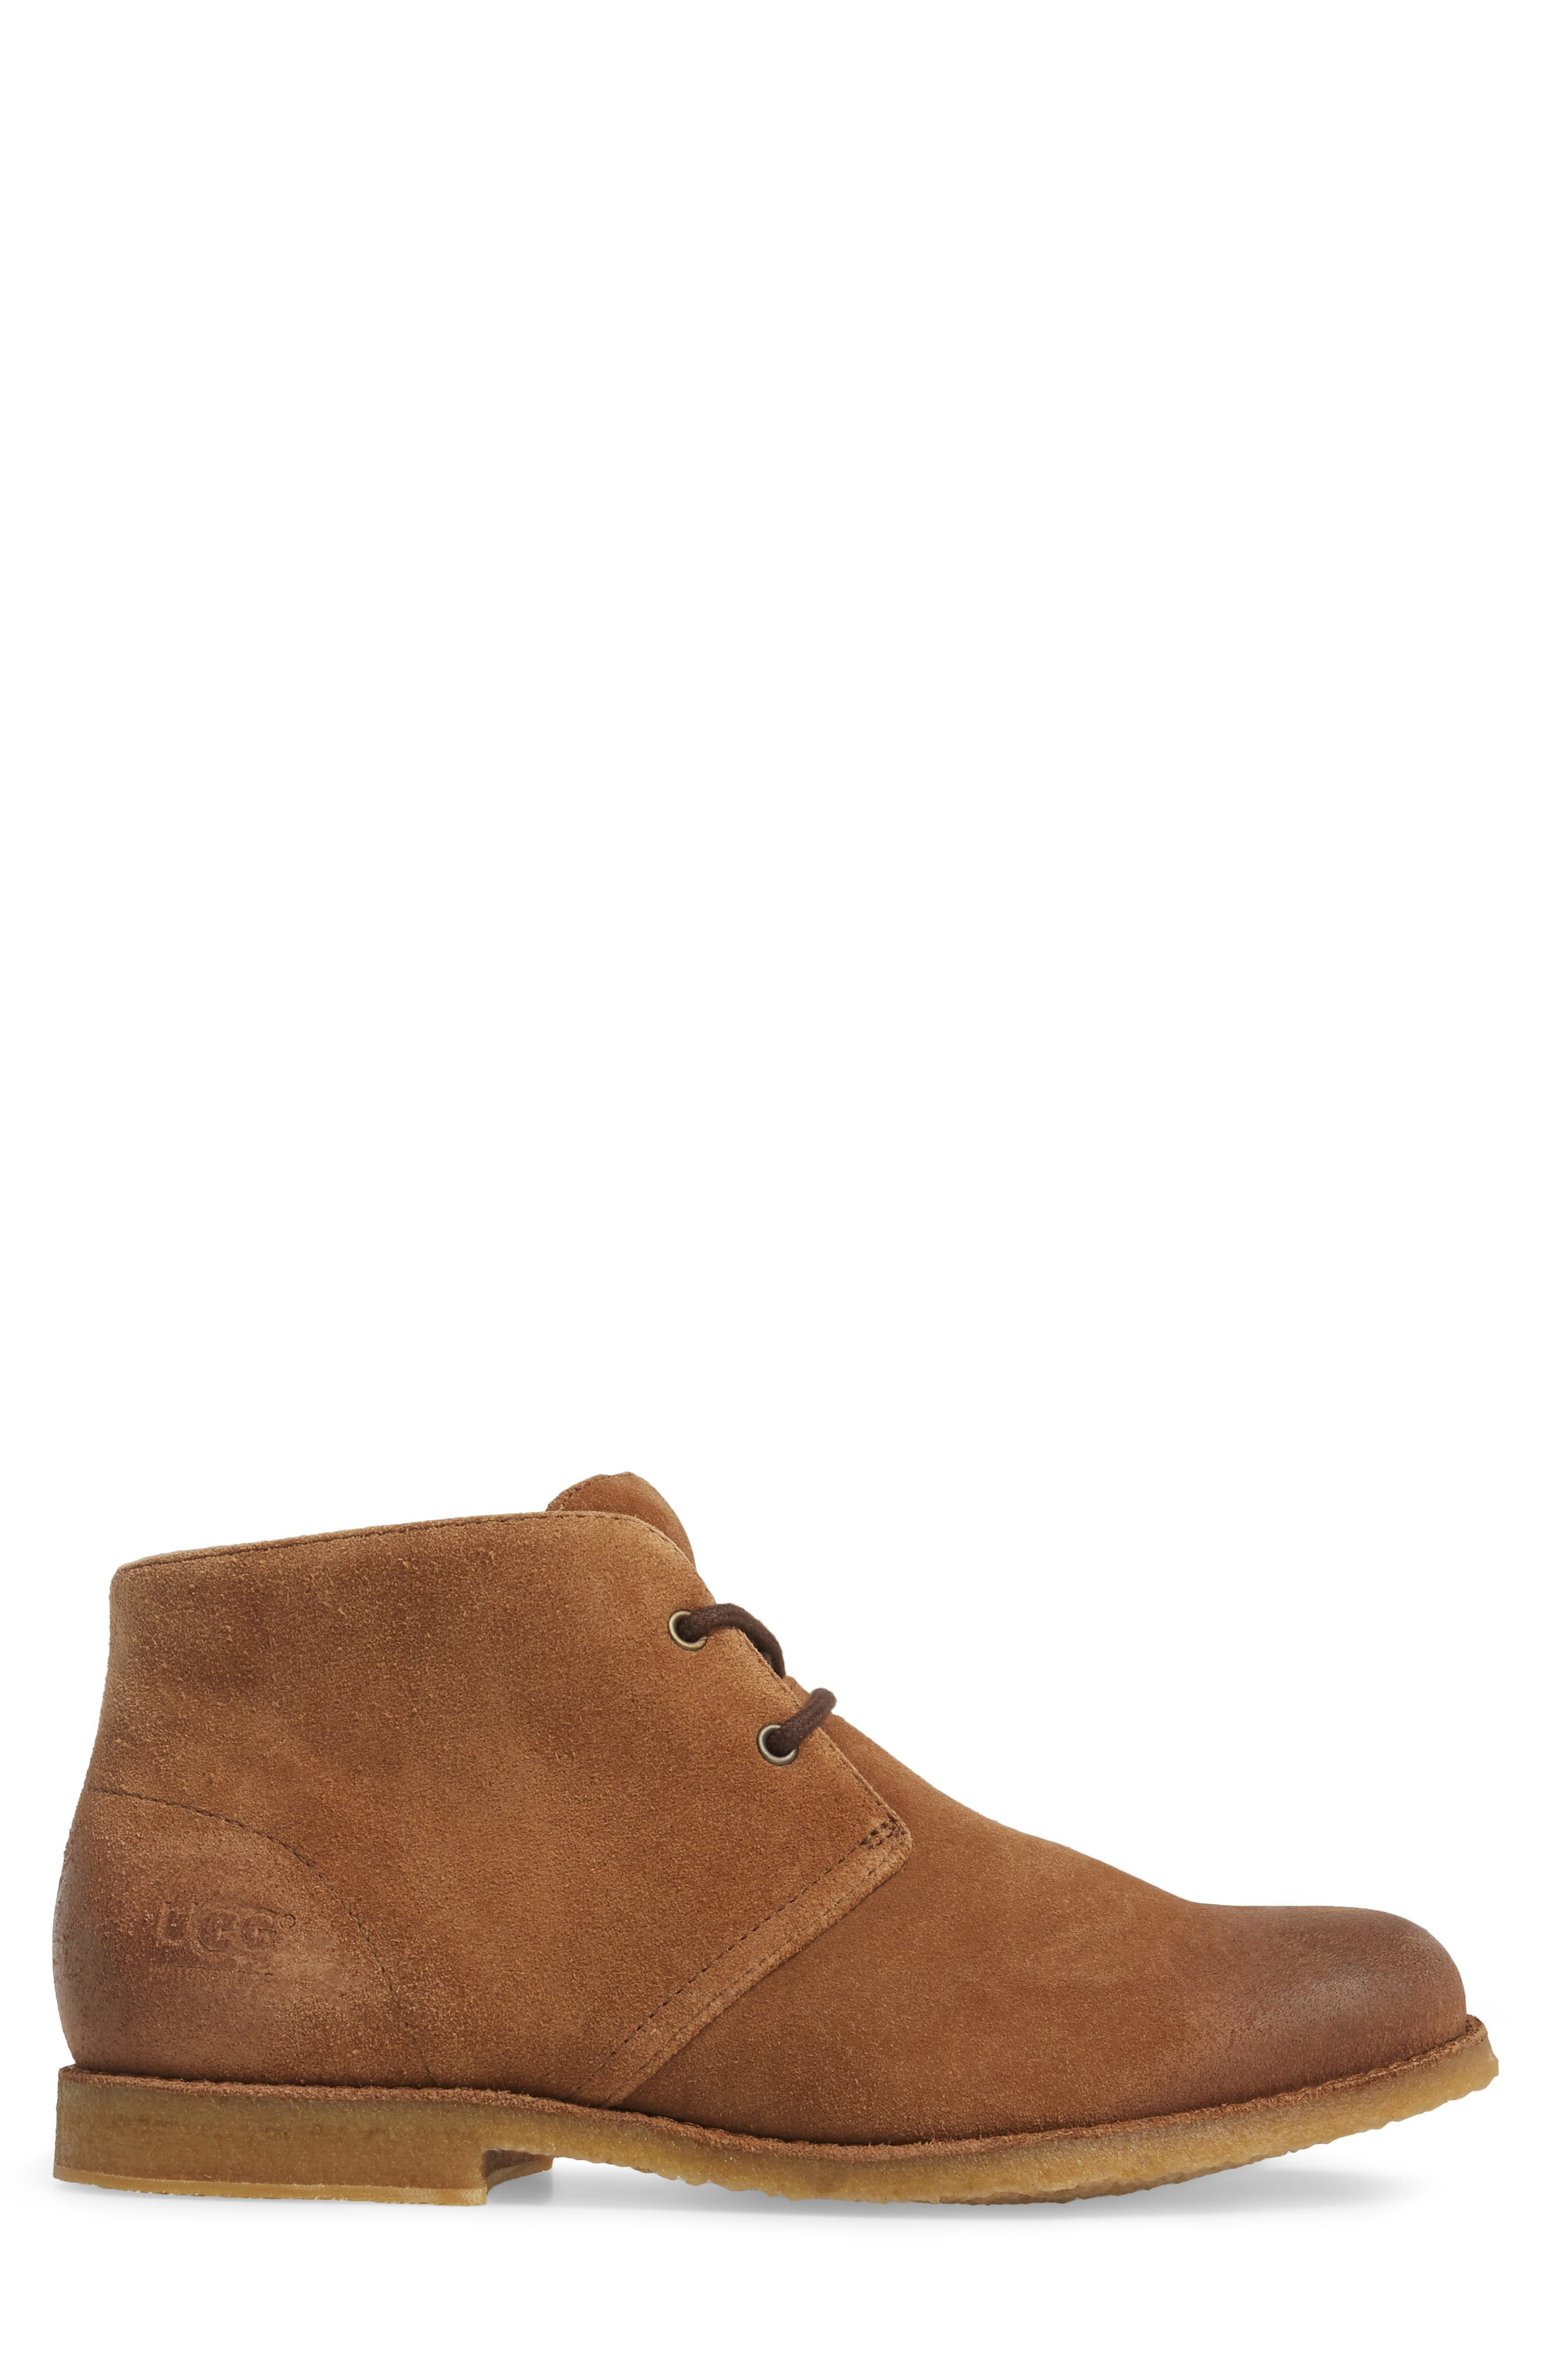 Alternate Image 3  - UGG® Leighton Chukka Boot (Men)